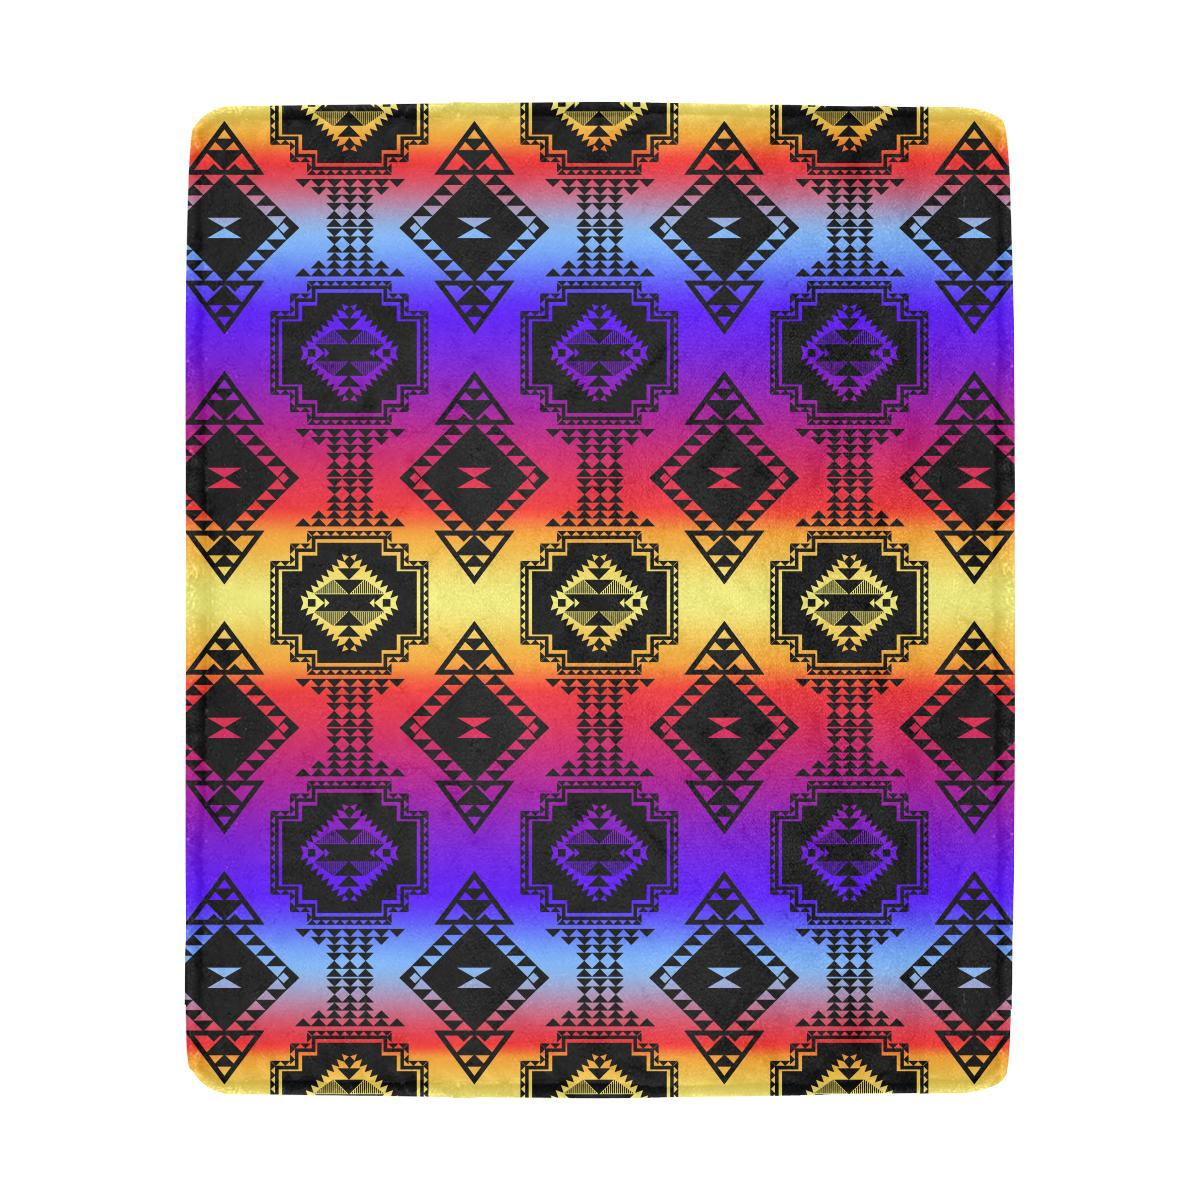 Gathering Sunset Ultra-Soft Micro Fleece Blanket 50